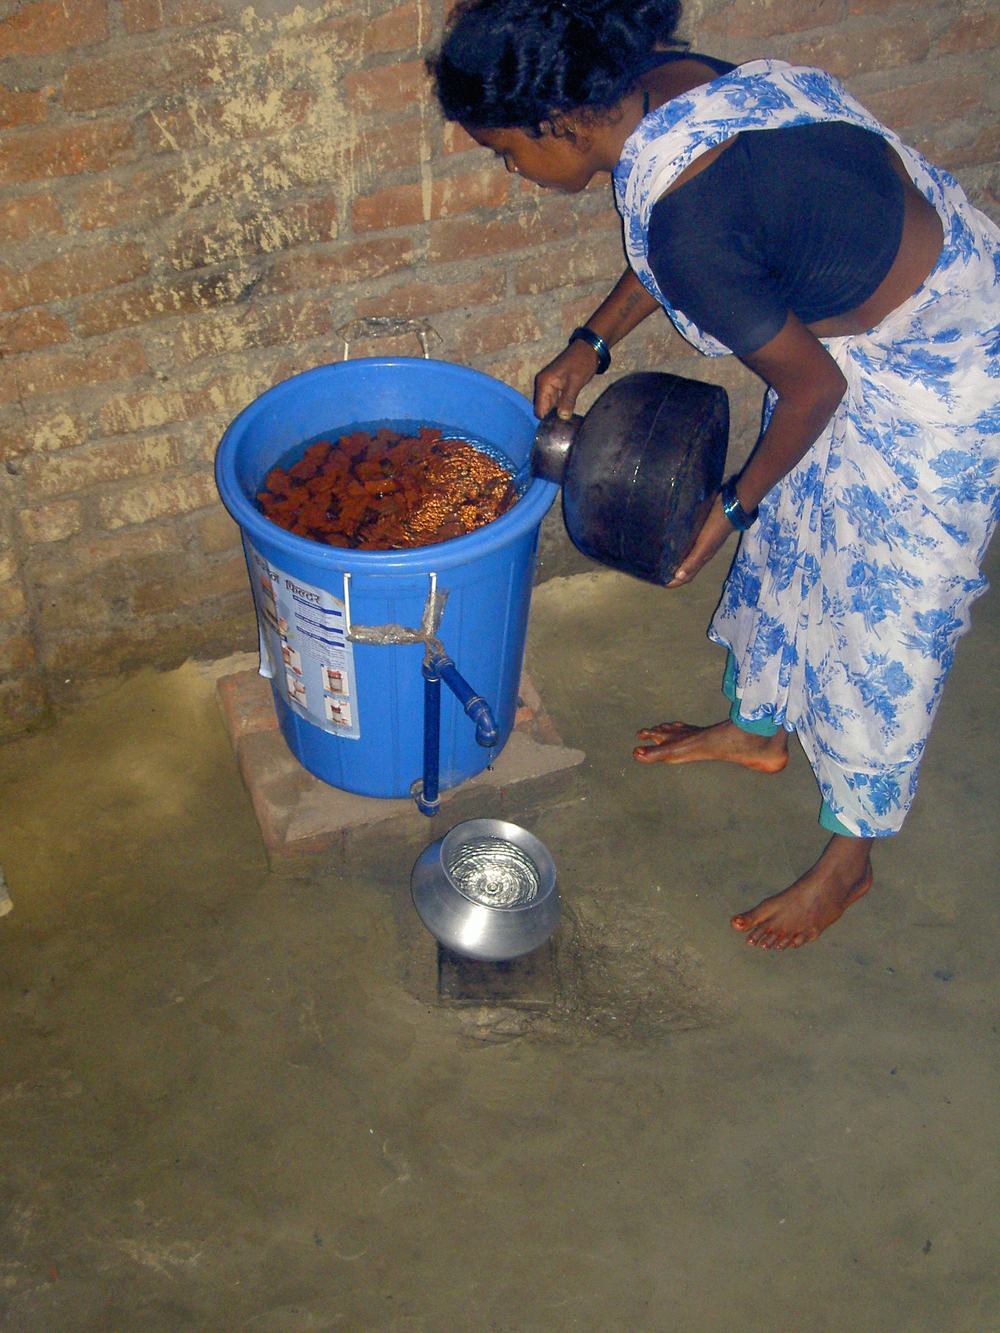 Access to clean water remains a challenge in Nepal's Terai region along the border with India. More than 30,000 people are exposed to arsenic